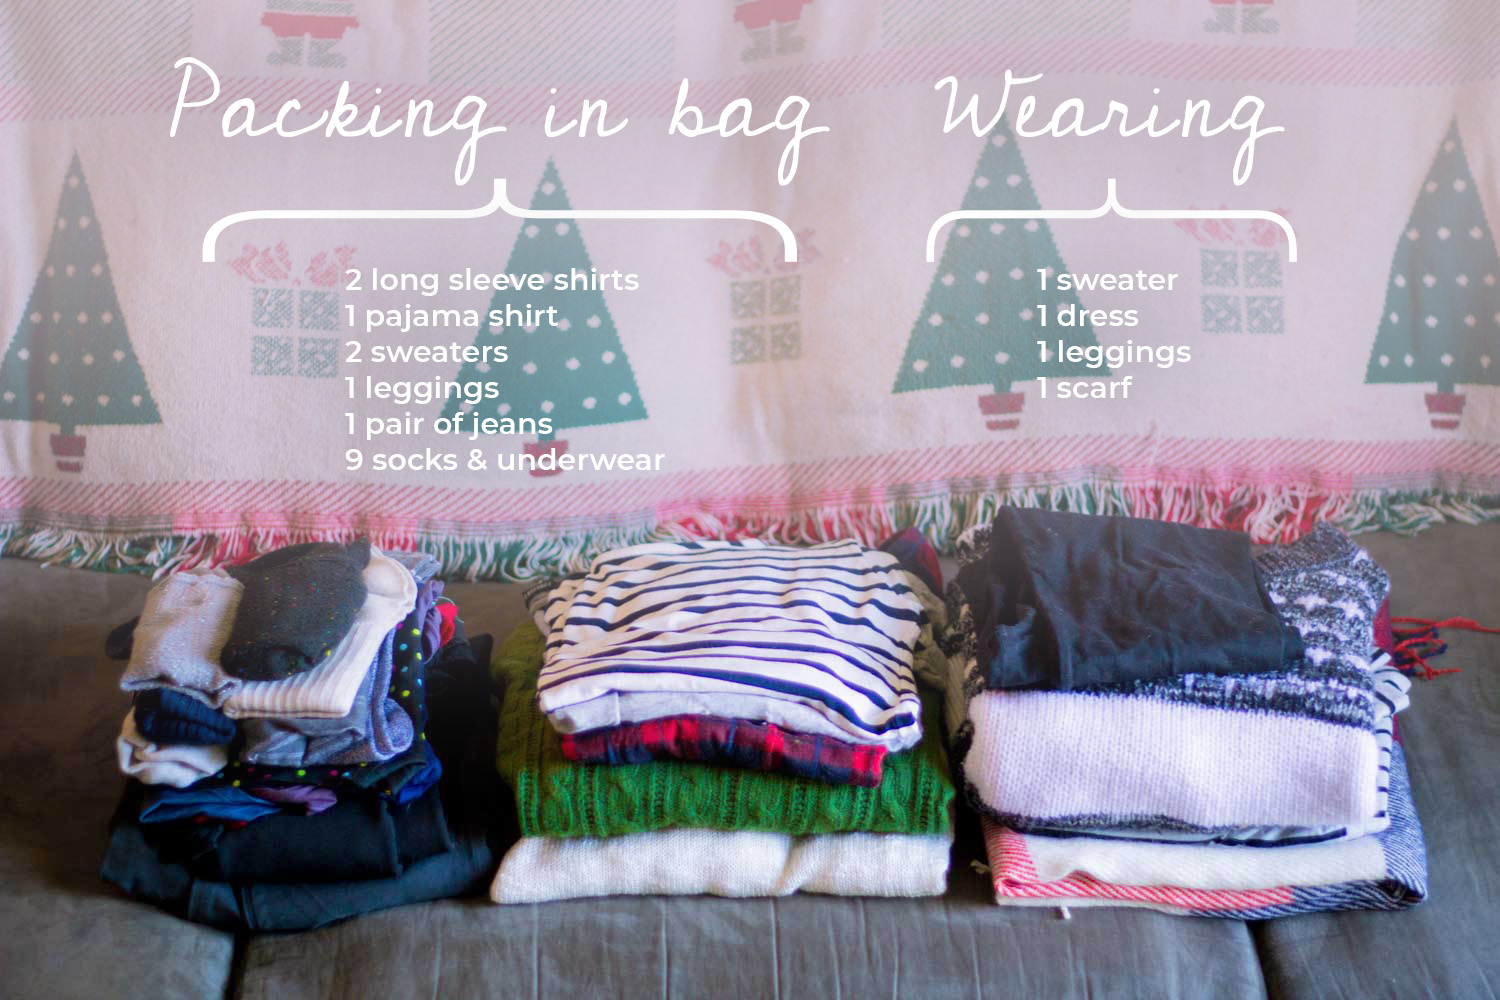 List of clothing to pack for a week in Europe in an underseat carry on bag